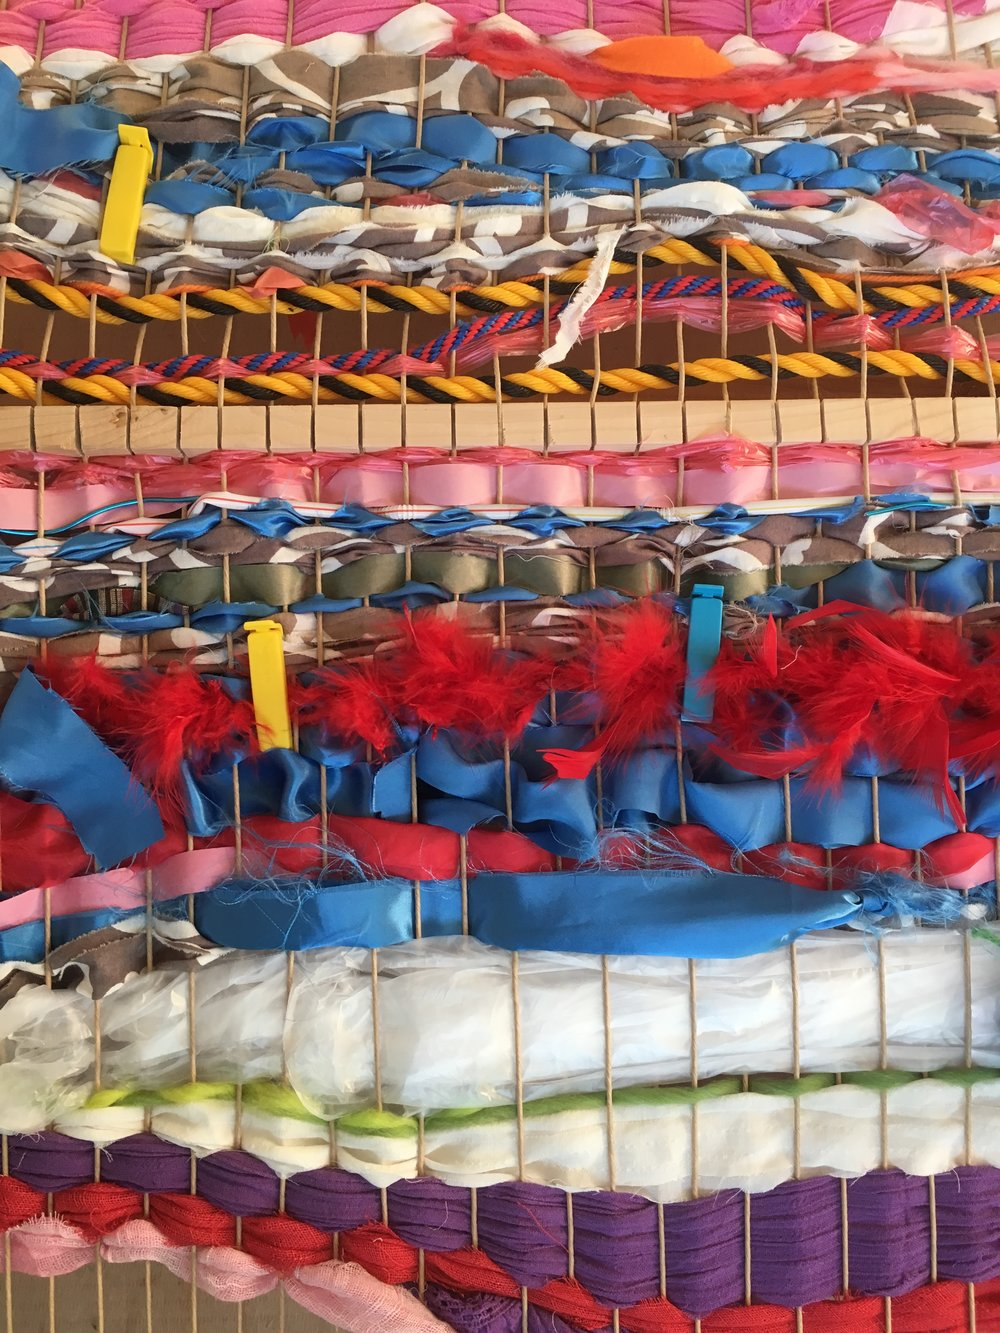 We wove rope, plastic, ribbon, scarves, sticks, feathers, and used clothing into the loom.